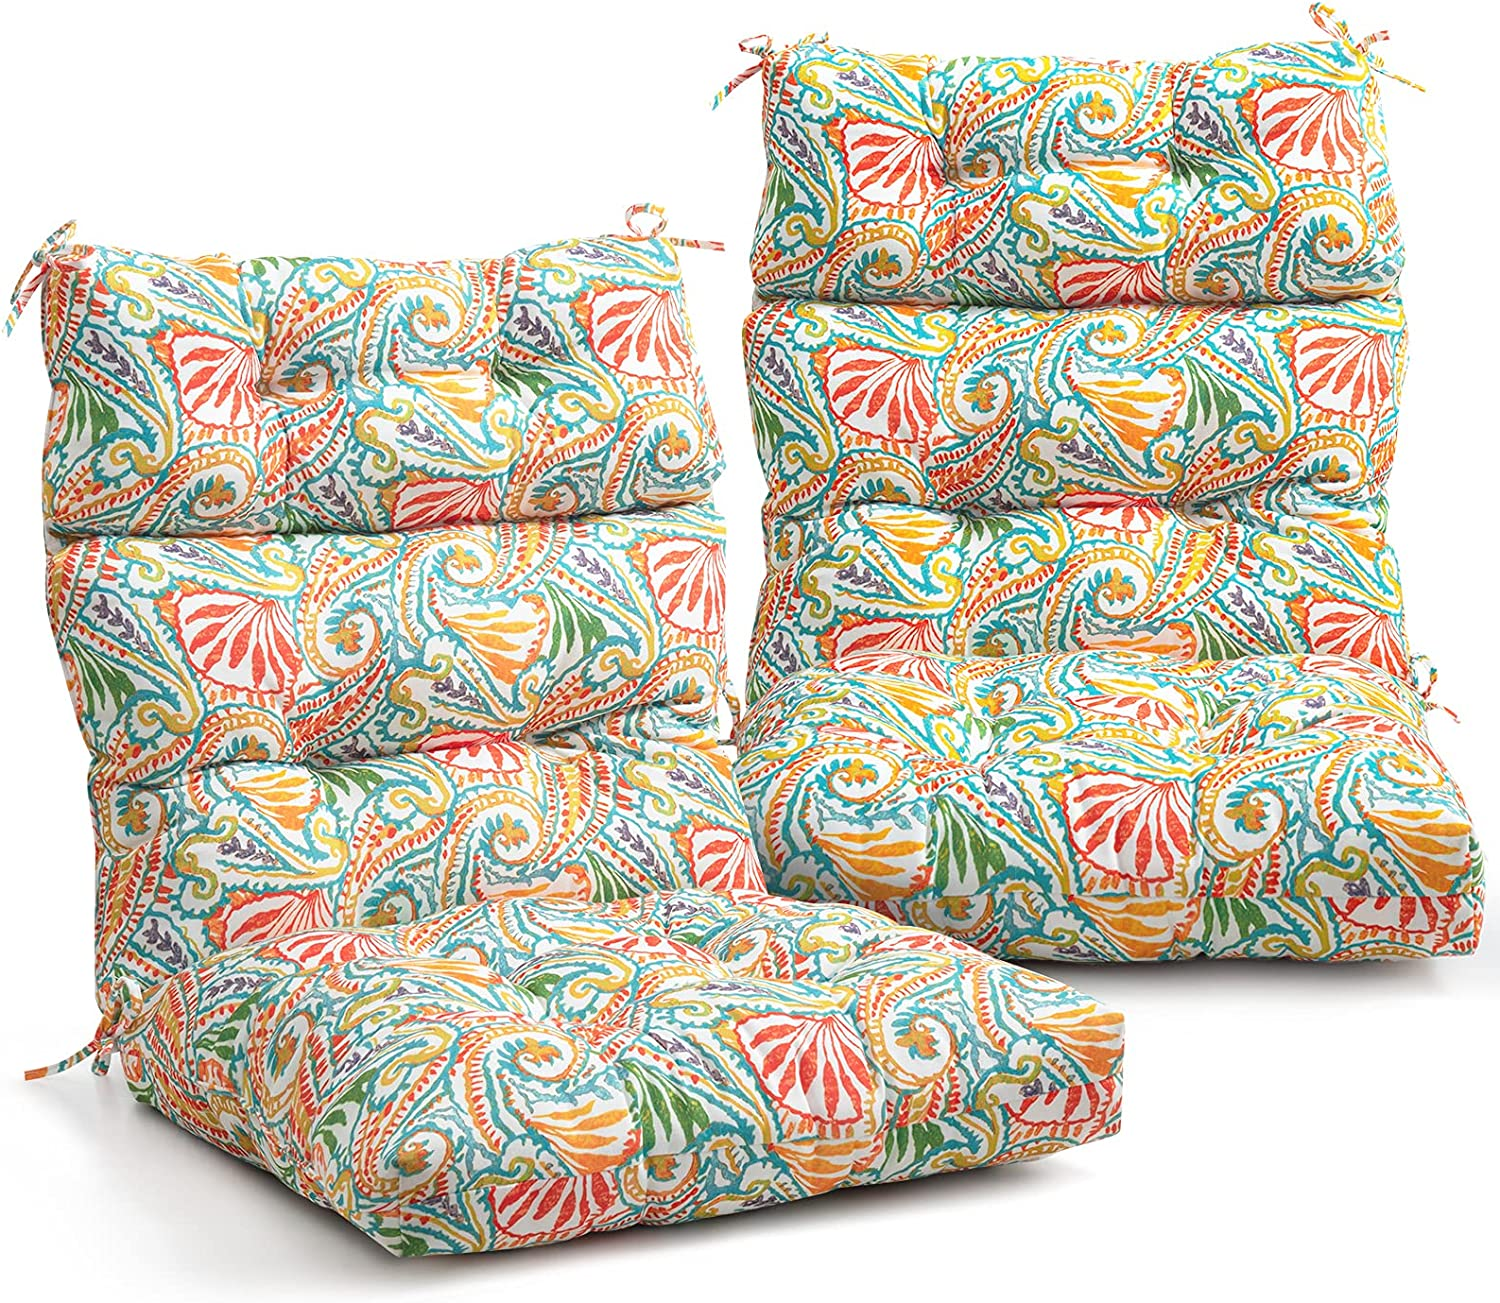 EAGLE PEAK Tufted Outdoor/Indoor High Back Patio Chair Cushion, Set of 2, 44'' x 22'', Paisley White